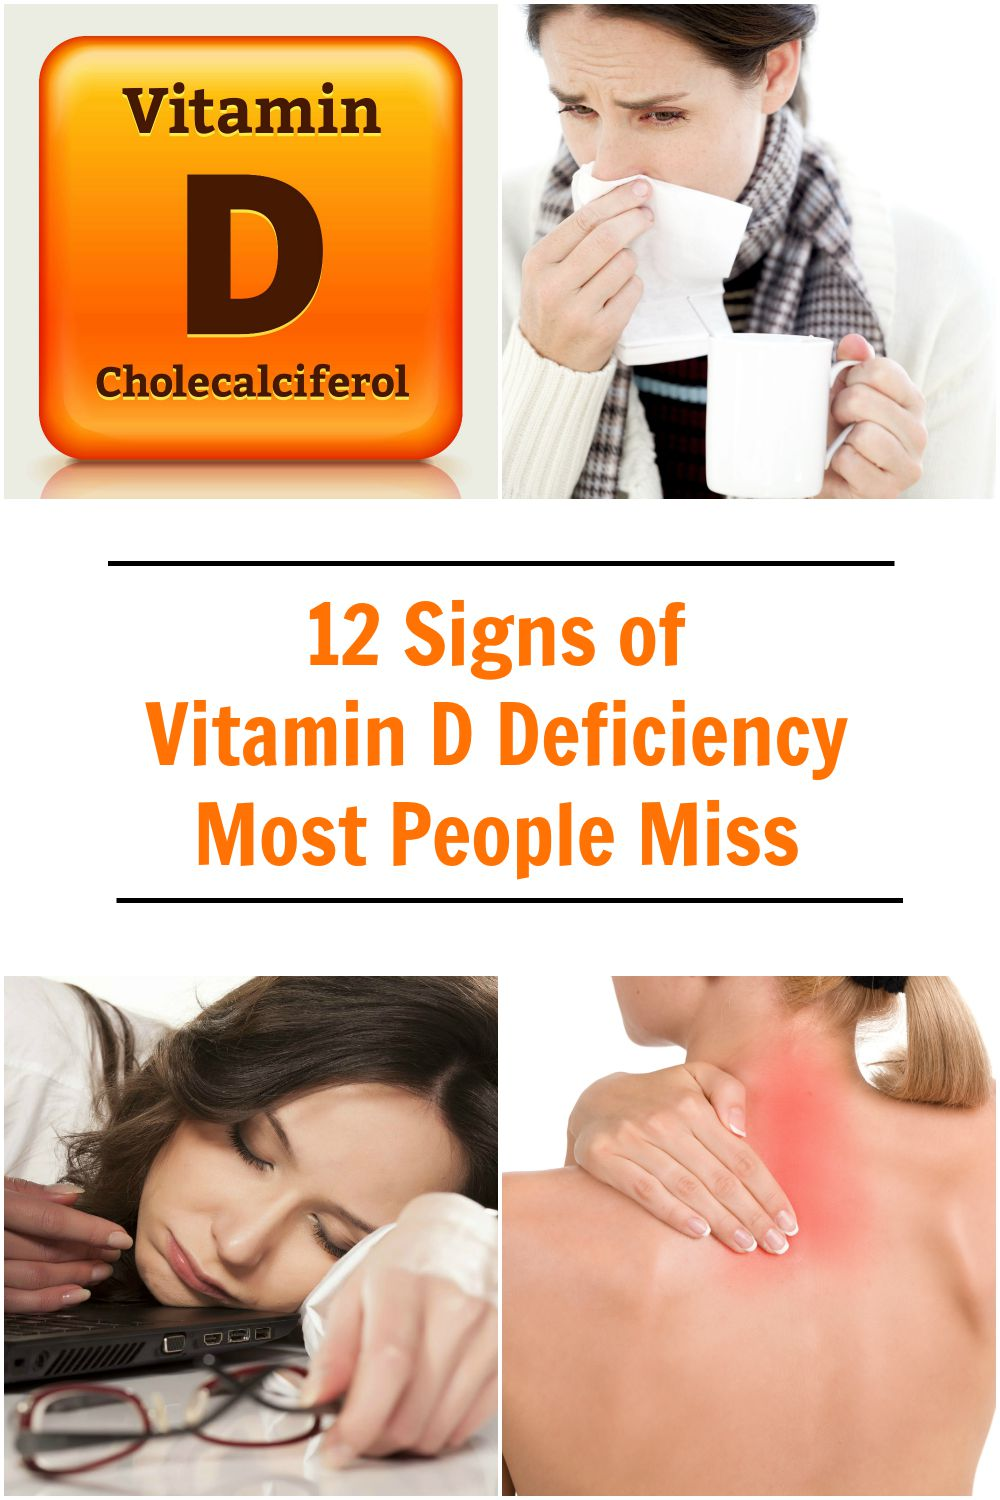 Vitamin D deficiency can result from inadequate exposure to sunlight; malabsorption; accelerated catabolism from certain medications; and, in infants, the minimal amount of vitamin D found in breast milk.